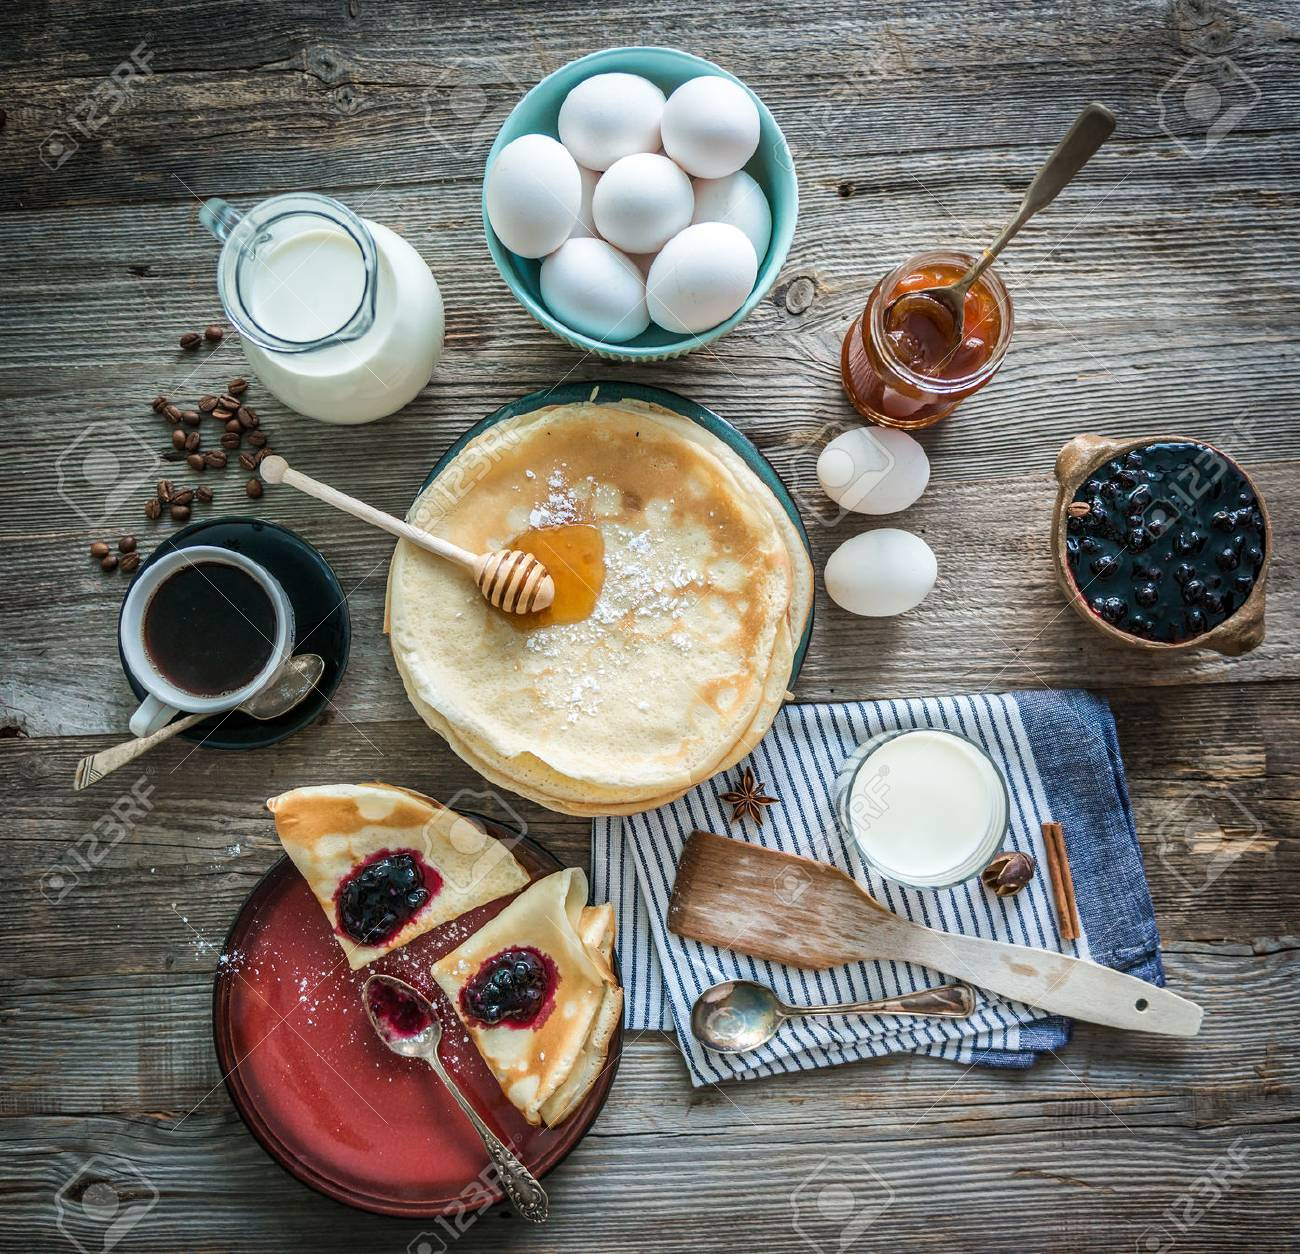 prepared pancakes and coffee among ingredients on wooden background - 47390017